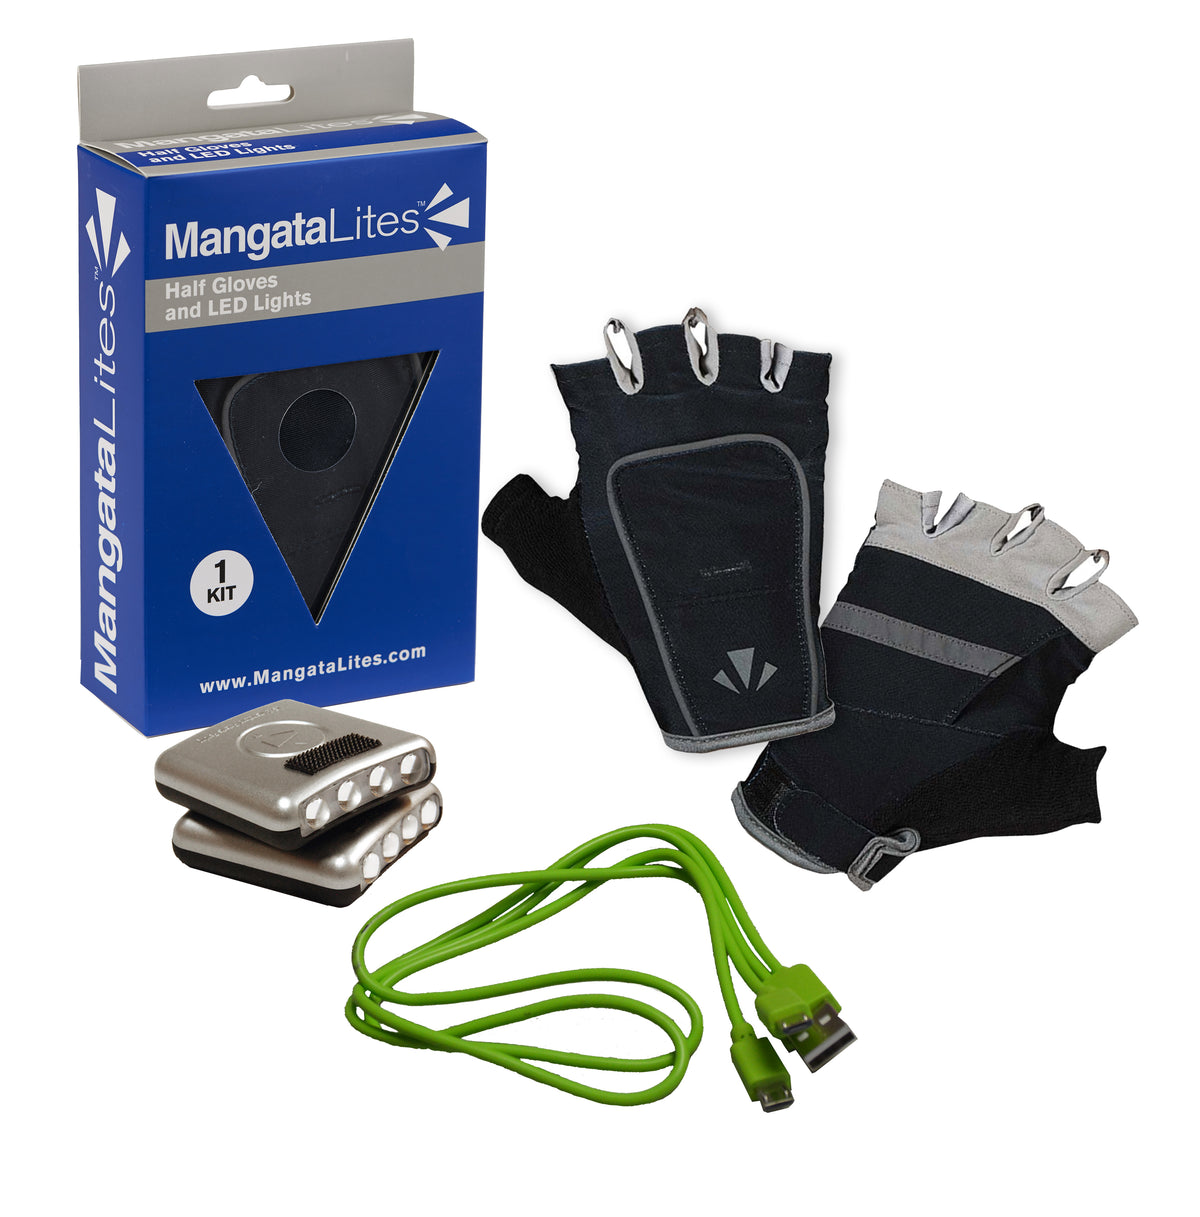 MangataLites Batty Black Half Gloves Kit (Lights included)